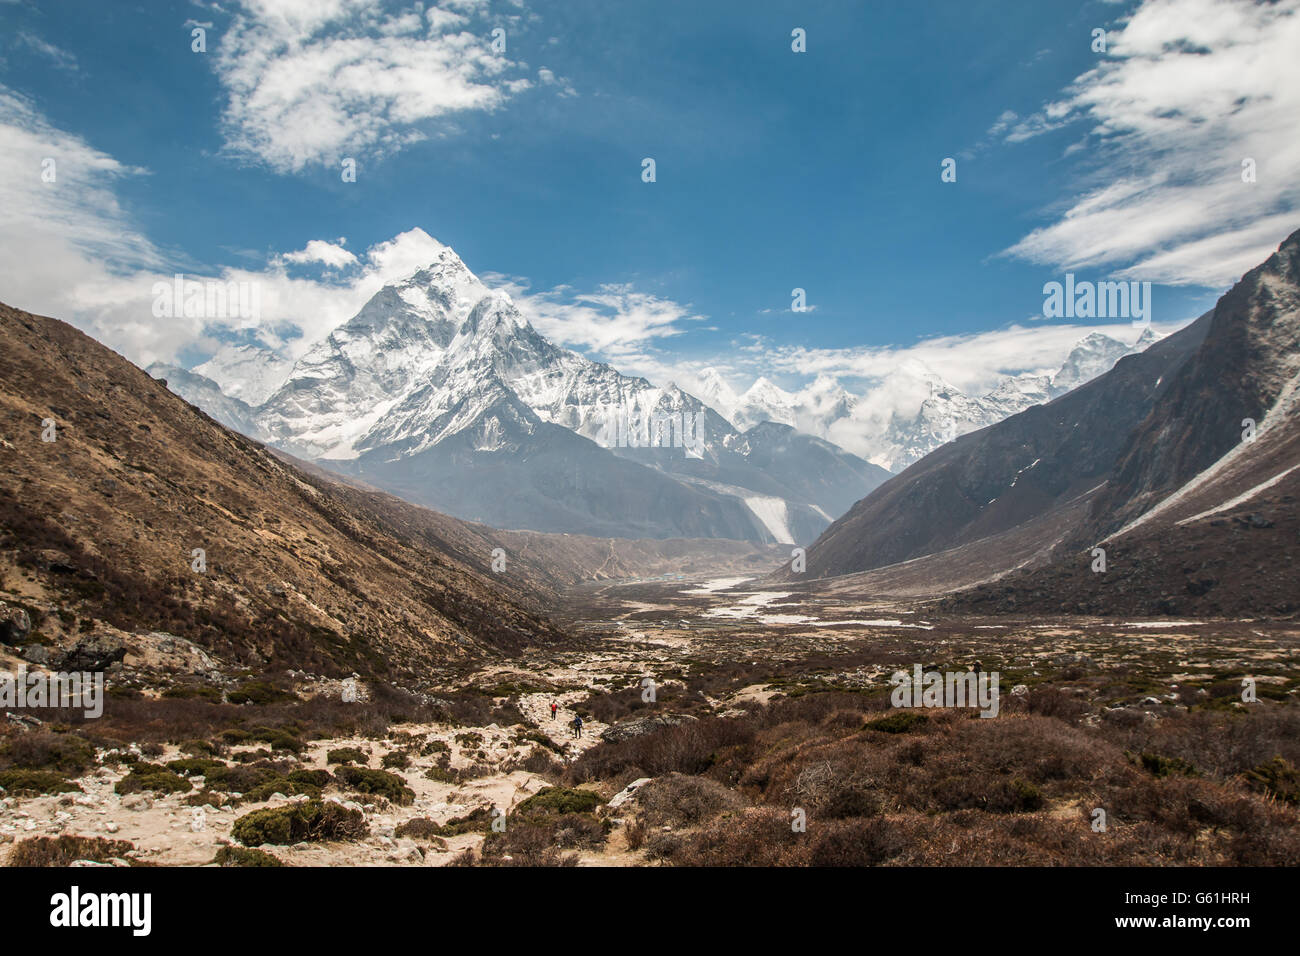 Nice Panoramic view of Himalayan mountains in Nepal - Stock Image